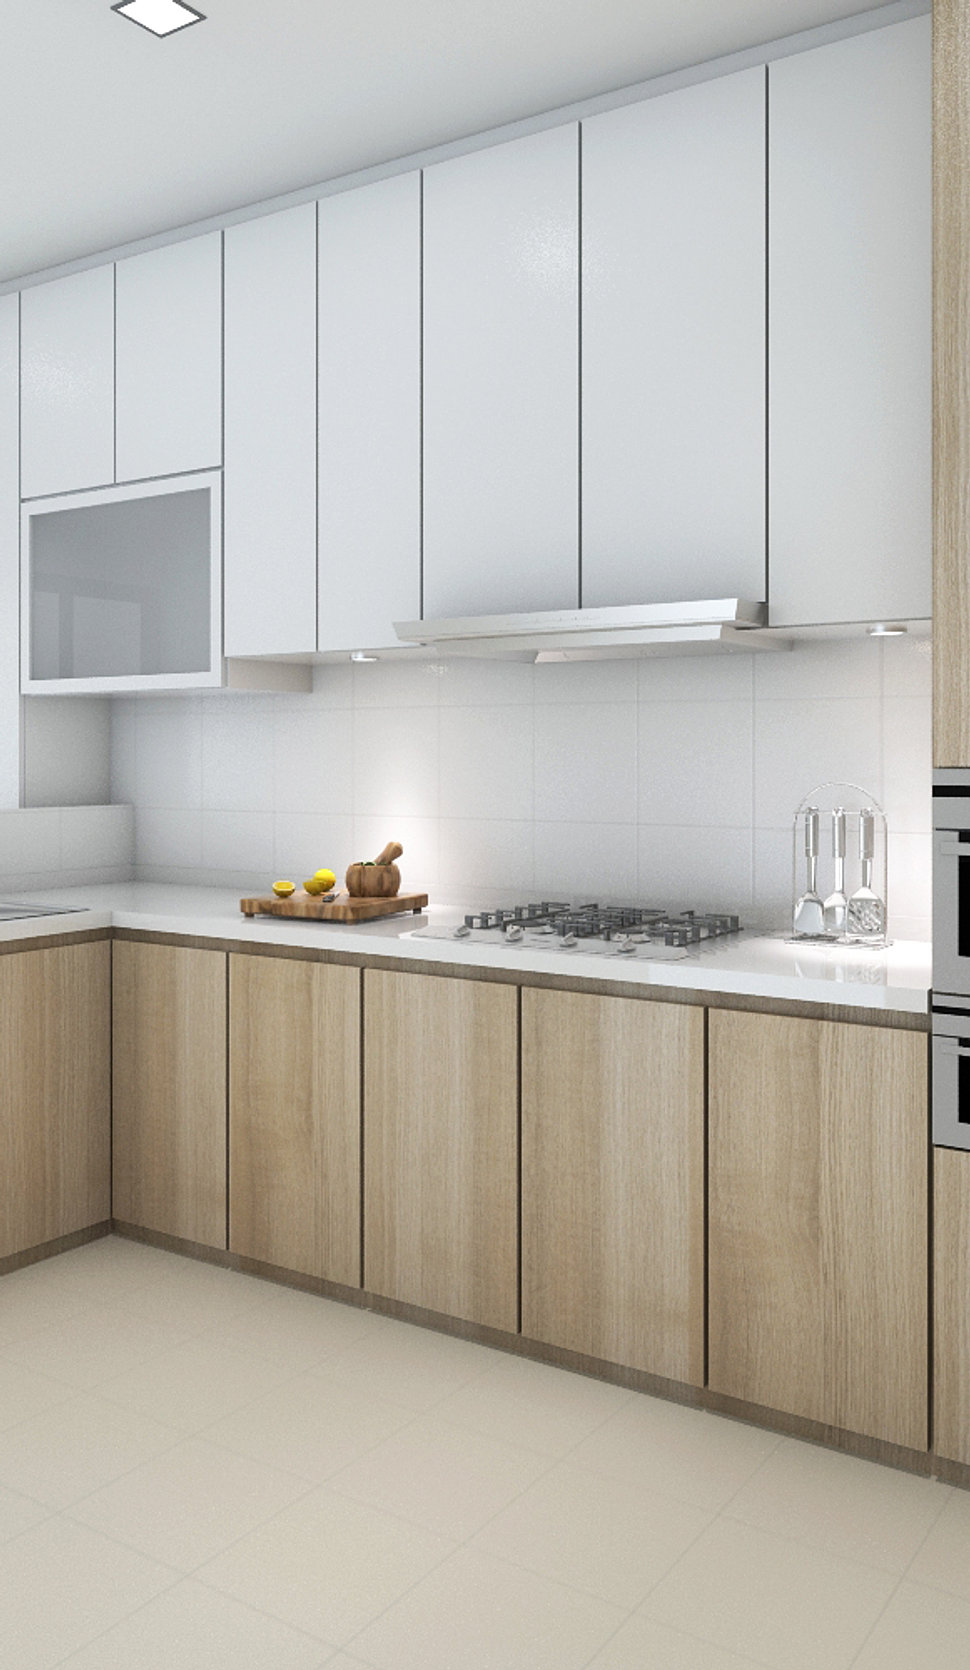 Kitchen Cabinets Singapore: 3 Room Hdb Interior Design